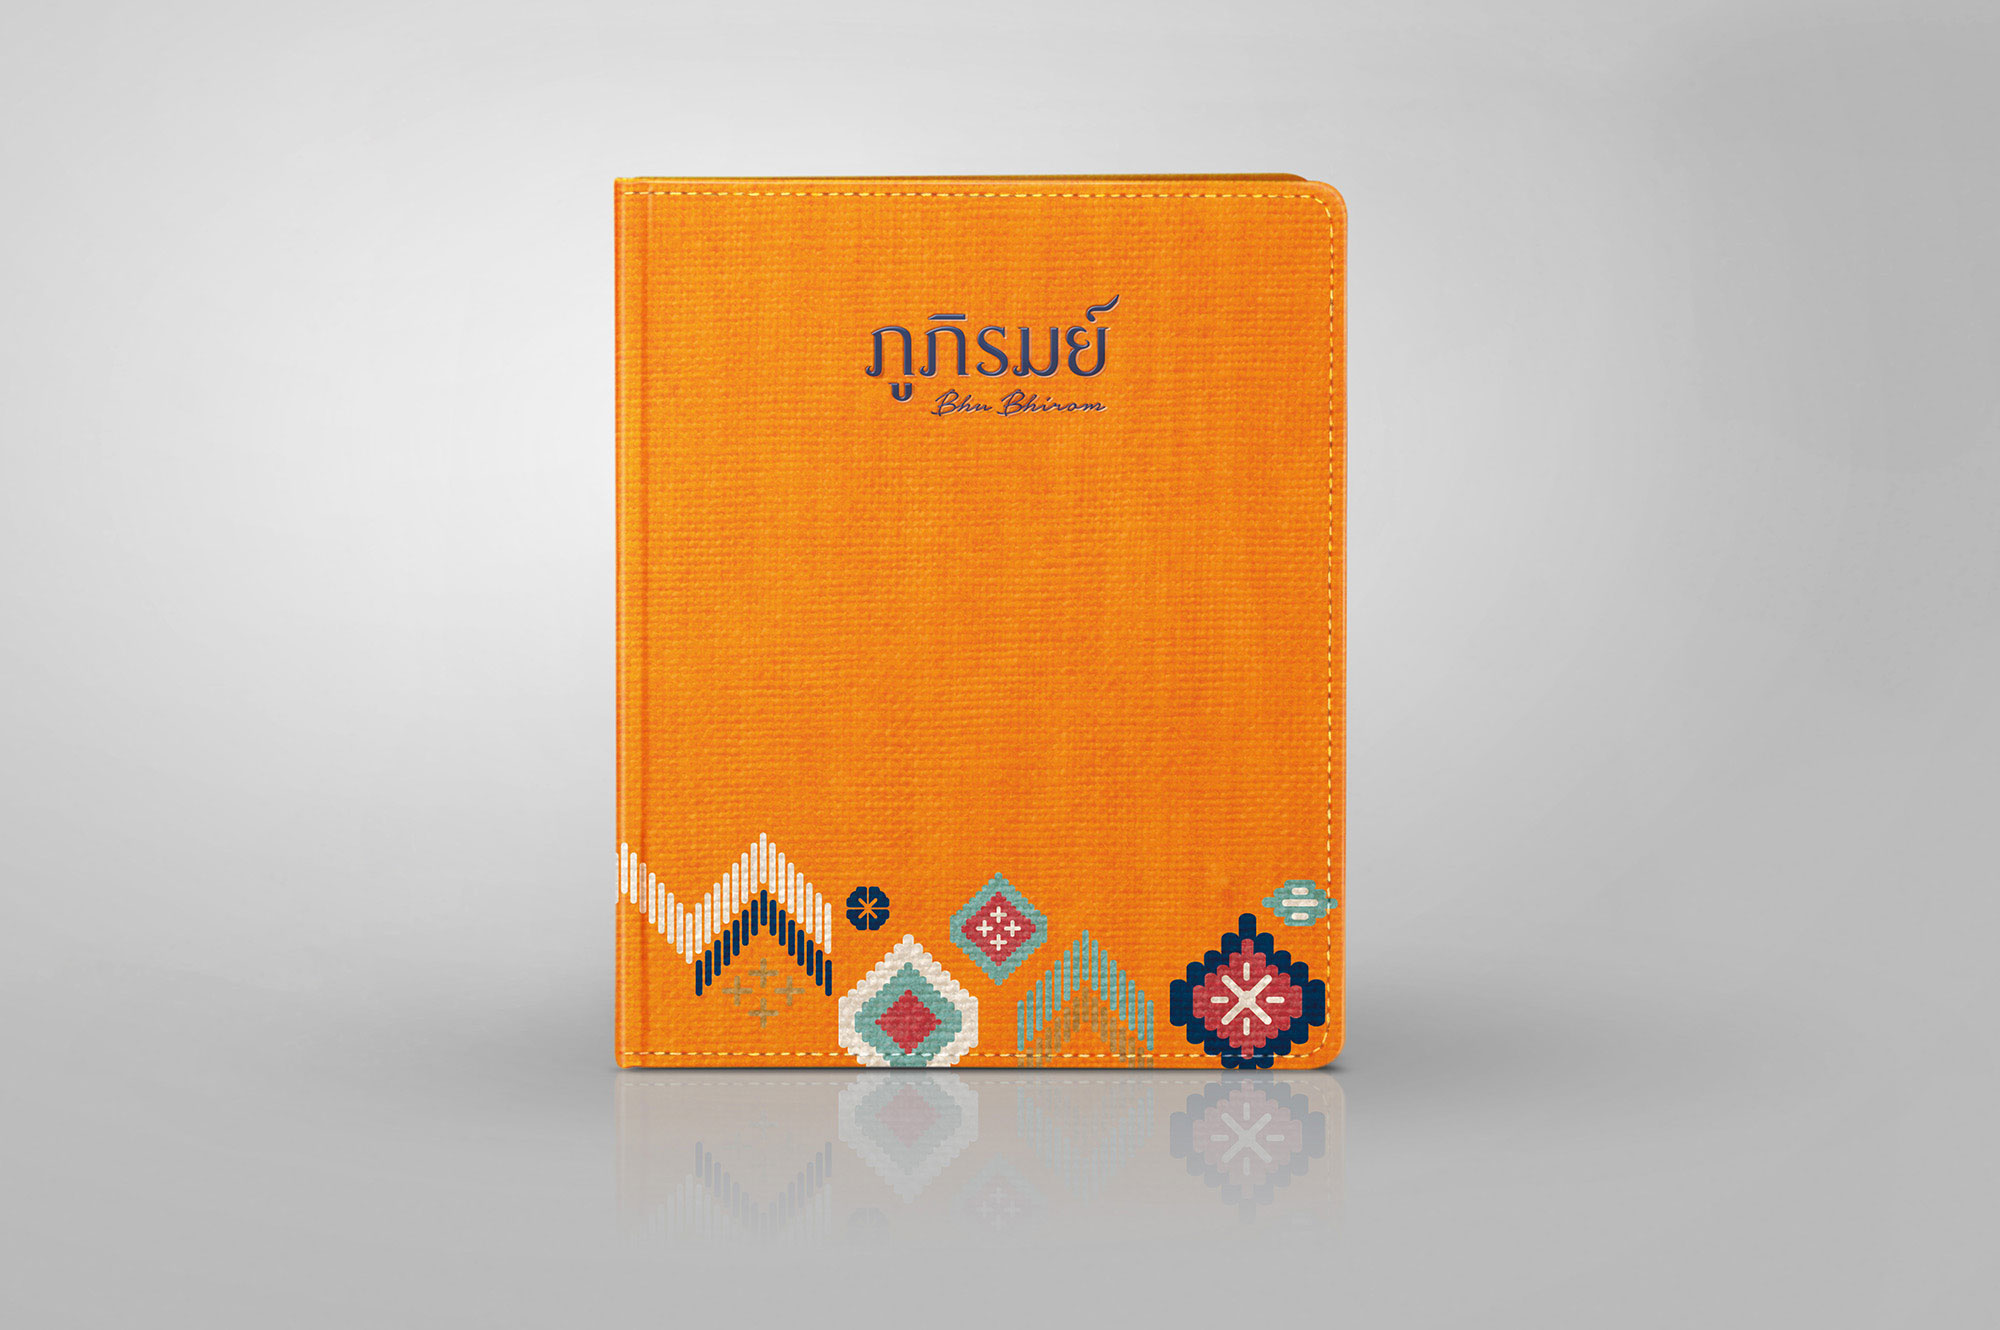 Bhu Bhirom Restaurant Menu Design